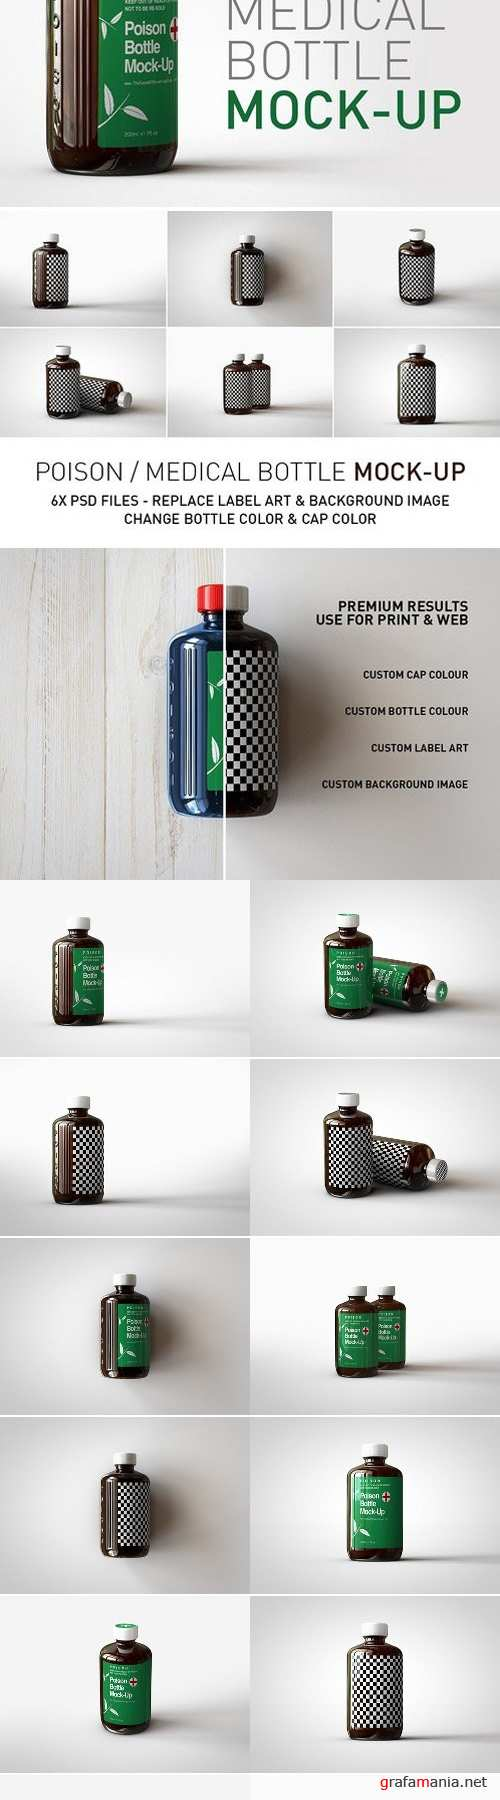 Amber Poison Bottle Mock-Up 2455356